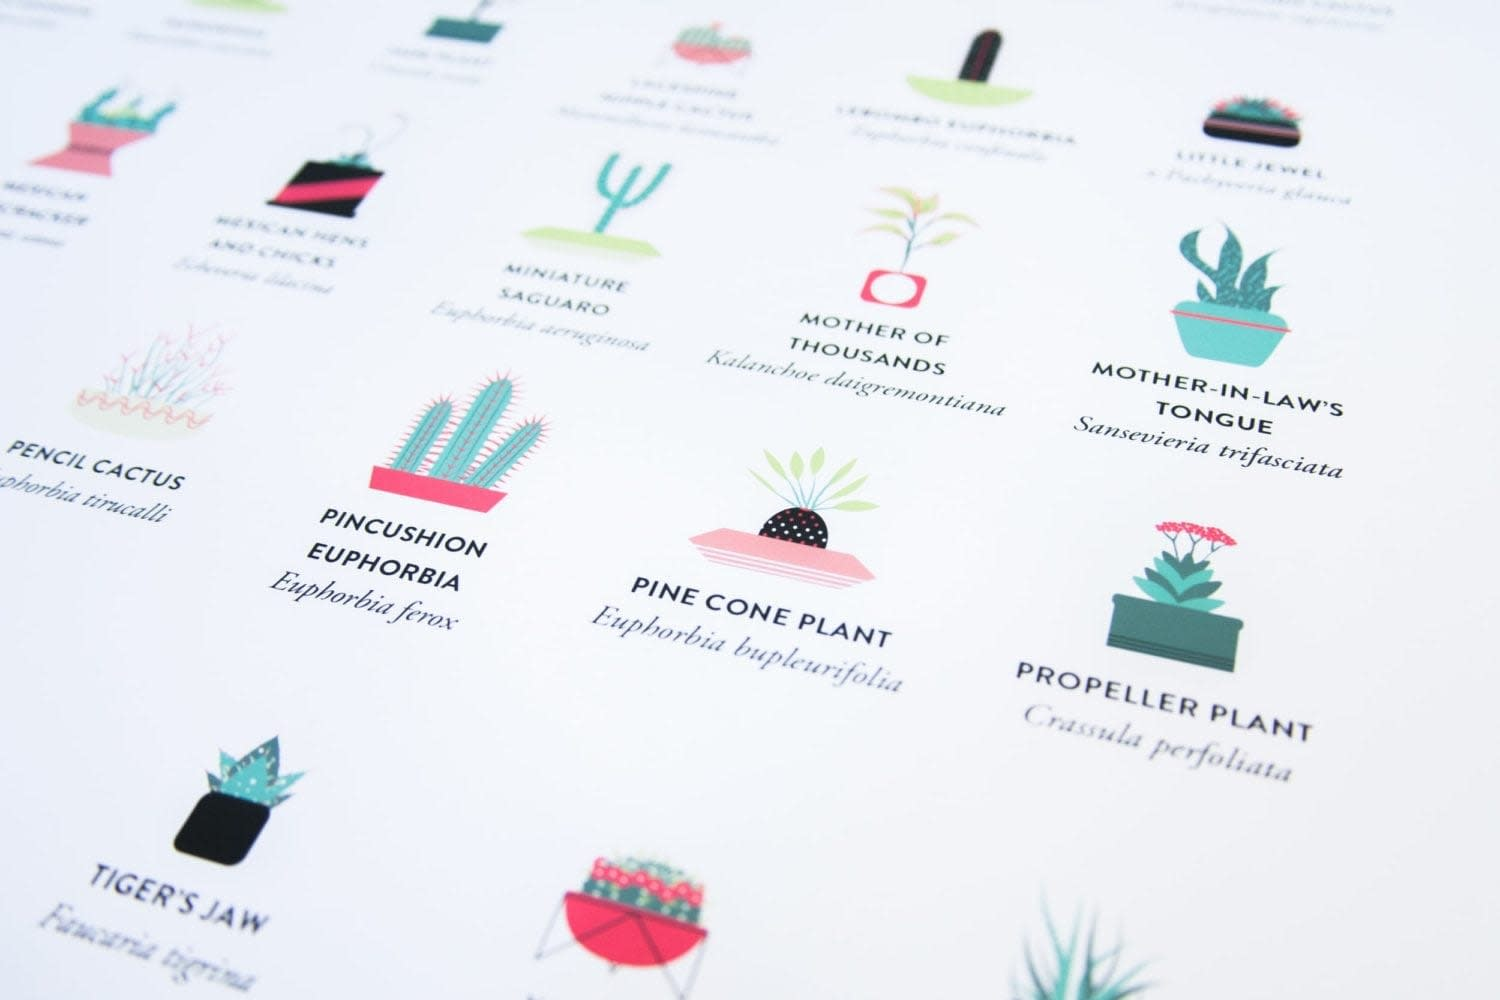 Succulents_And_Cacti_Killer_Foundry